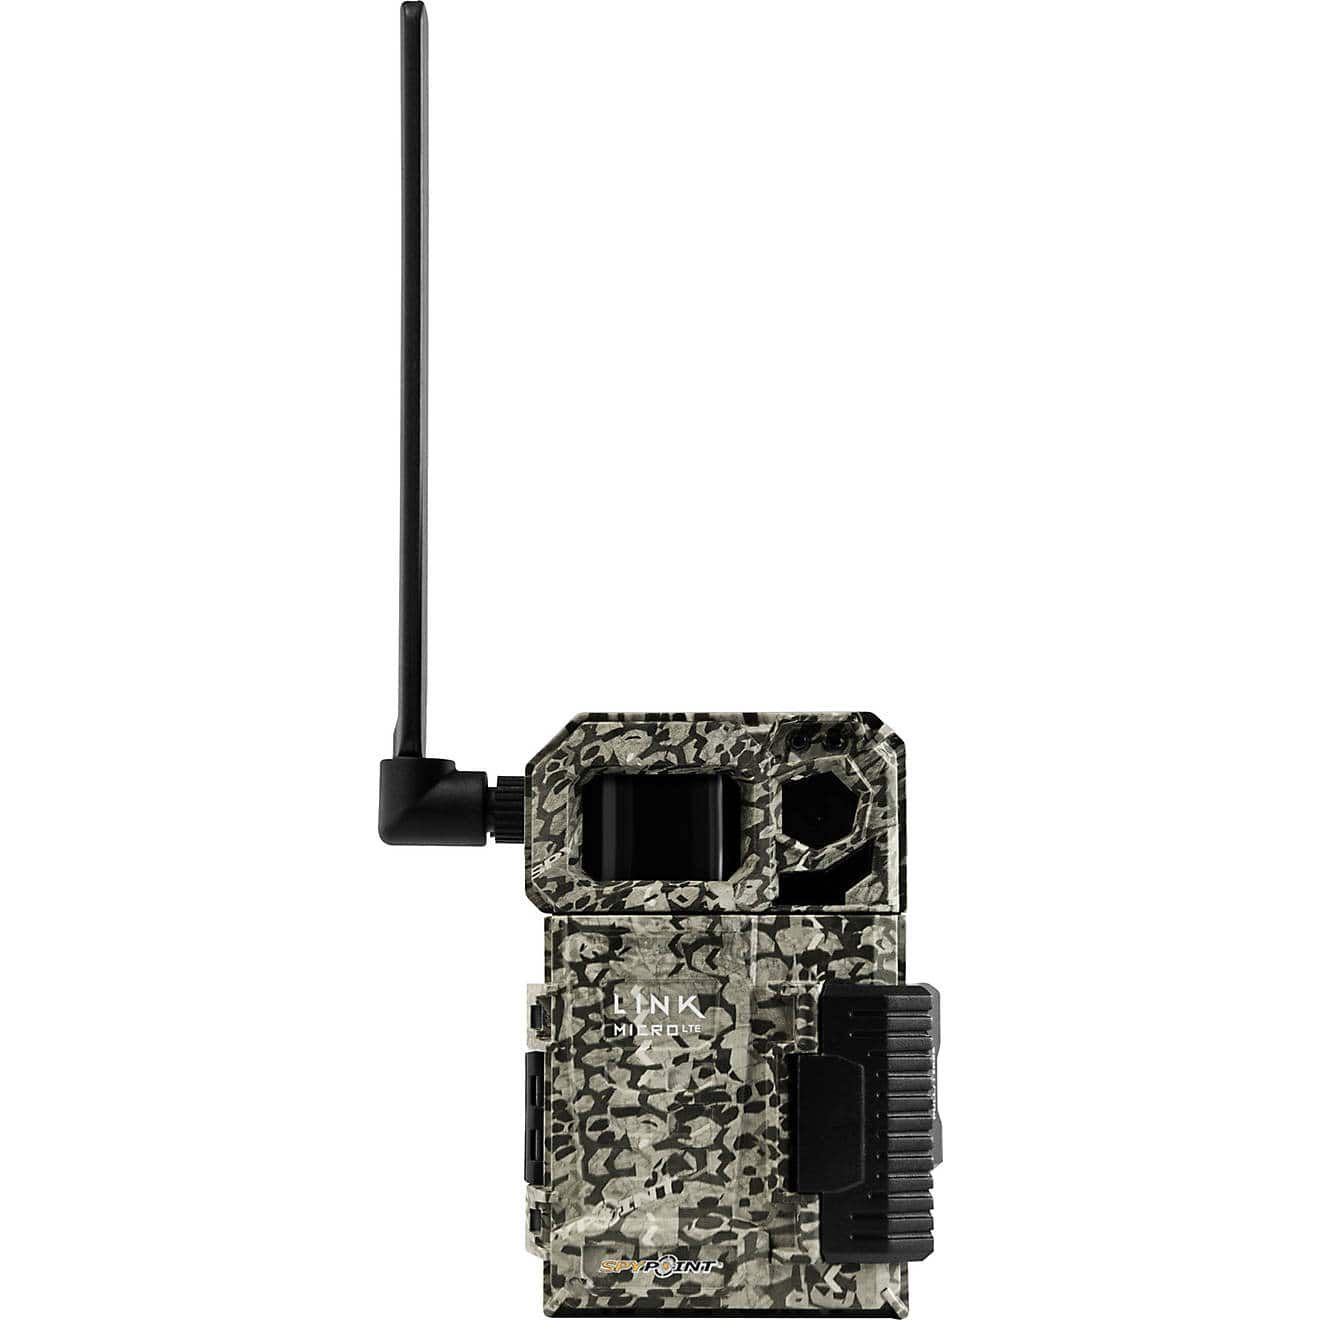 SPYPOINT Link-Micro-LTE 10.0 MP Cellular Trail Camera $99.99 + Free Shipping